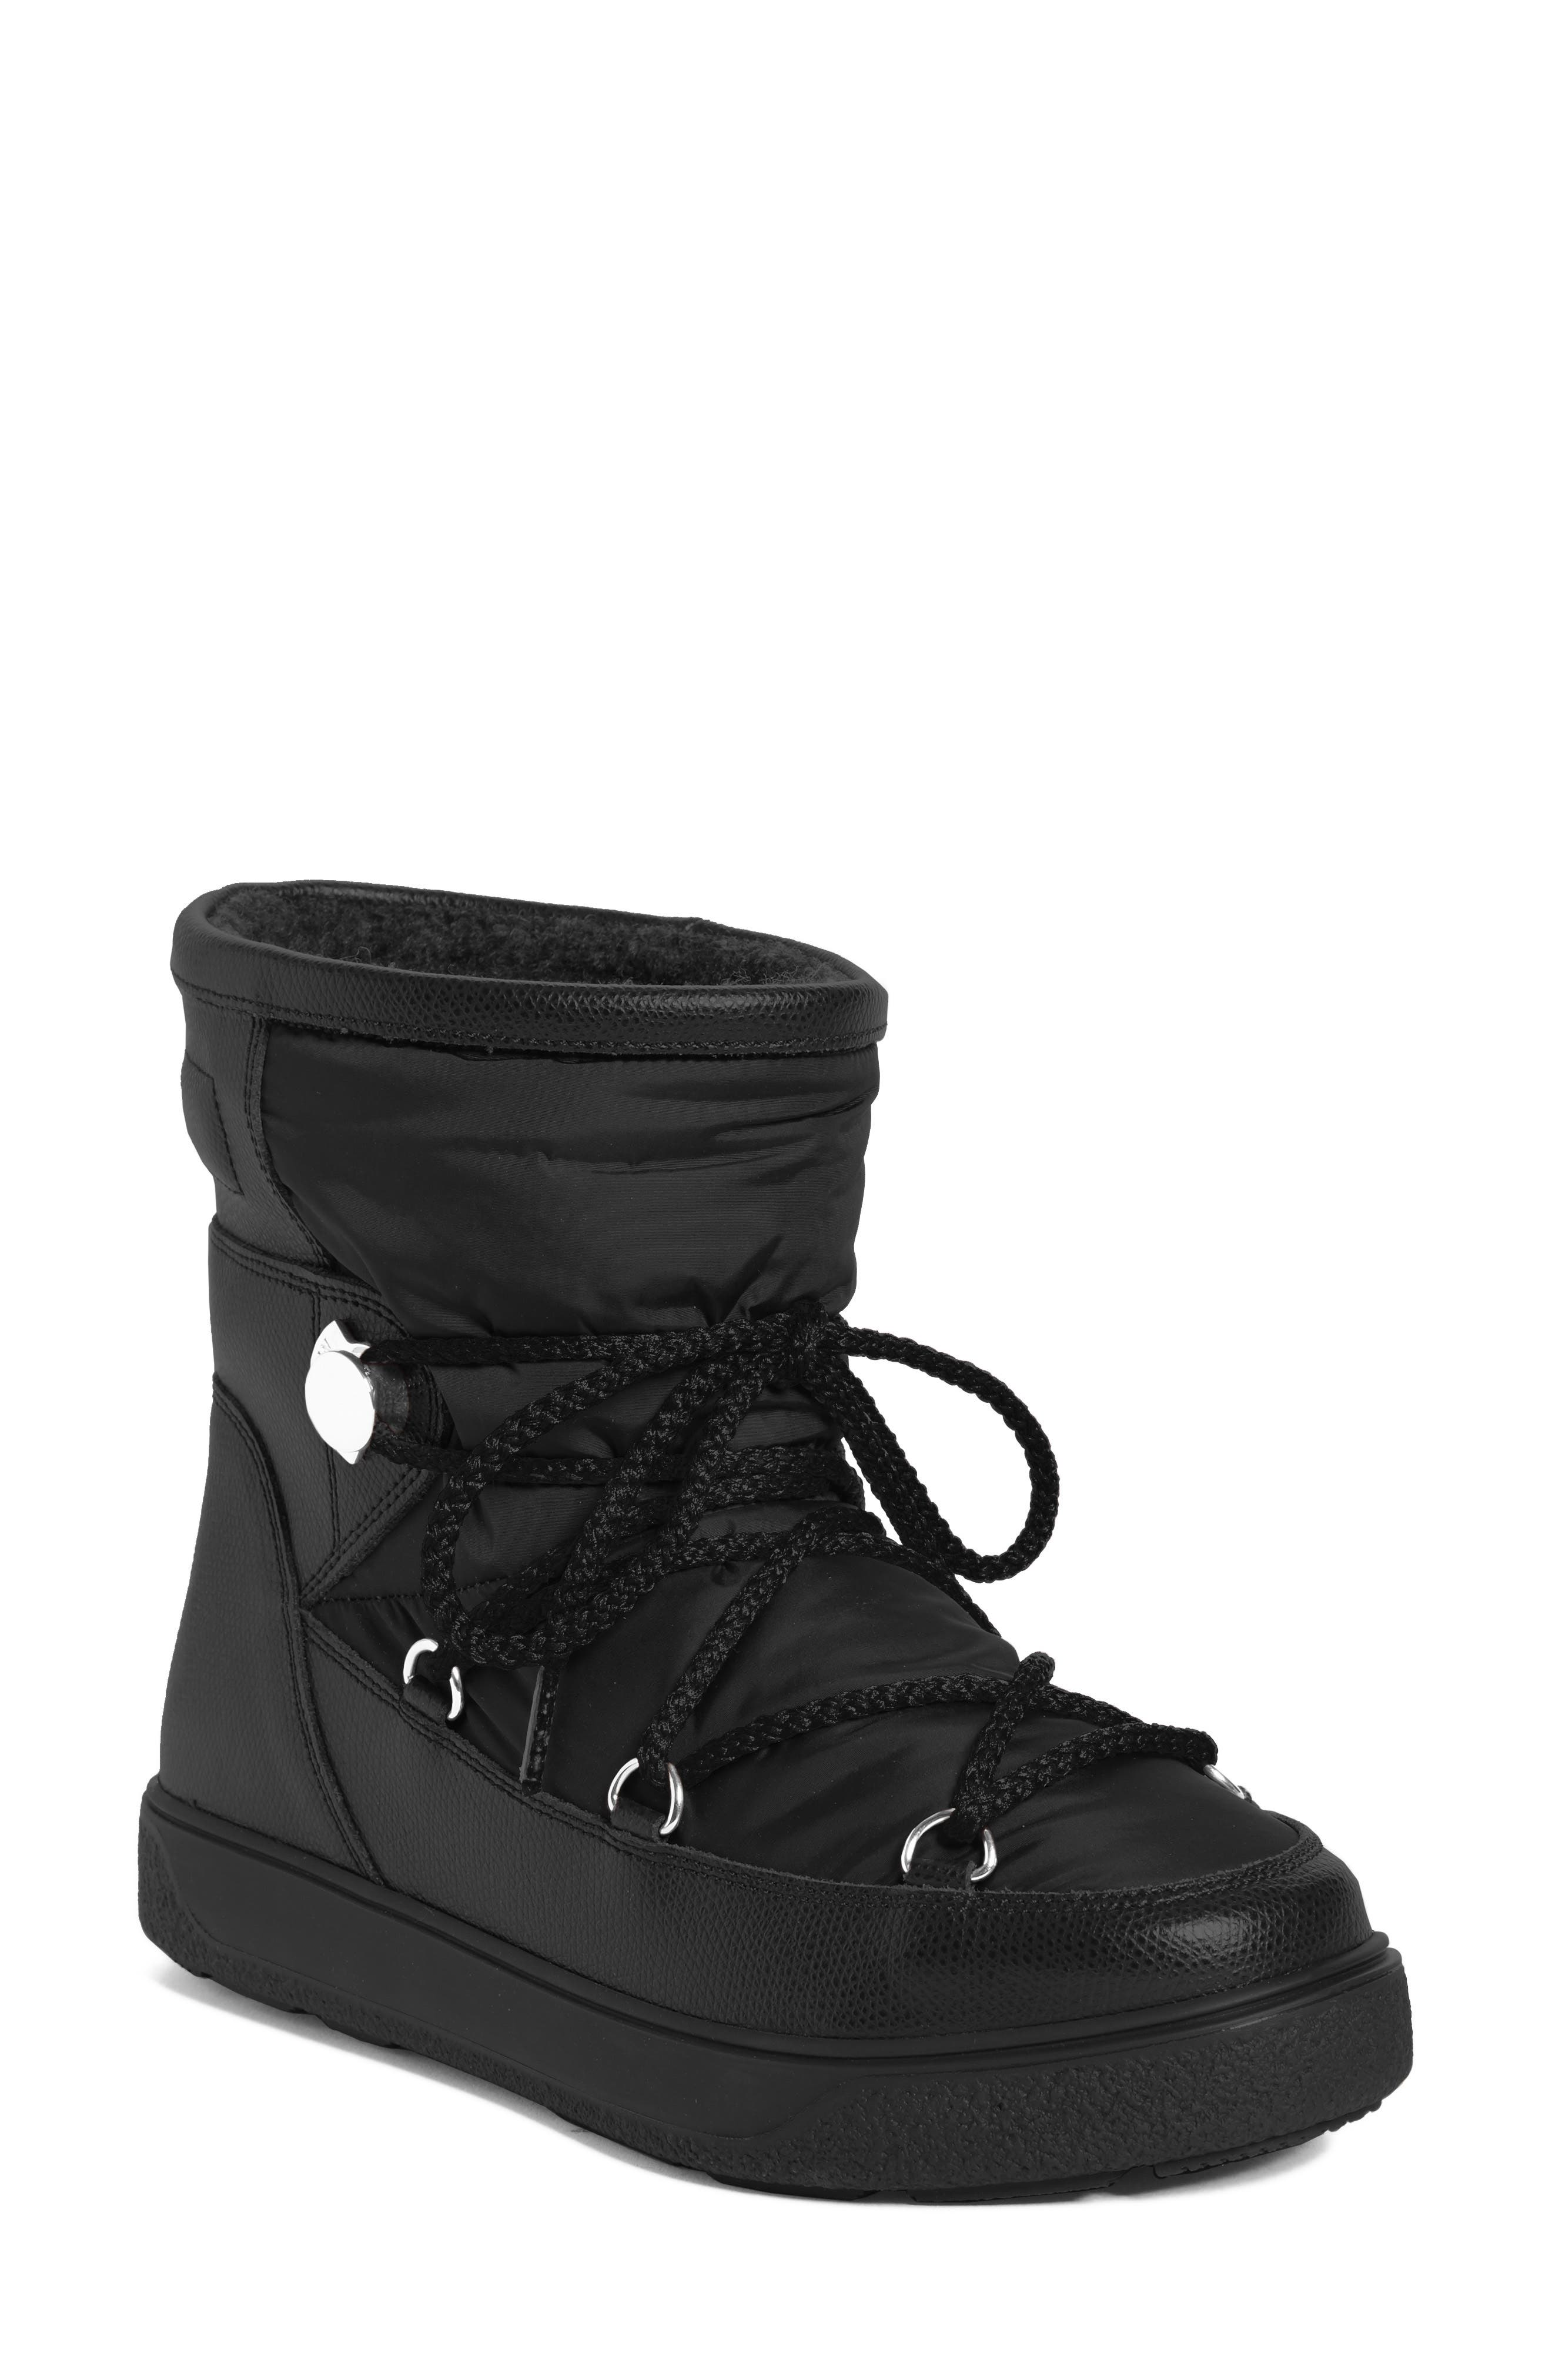 New Fanny Stivale Short Moon Boots,                             Main thumbnail 1, color,                             Black